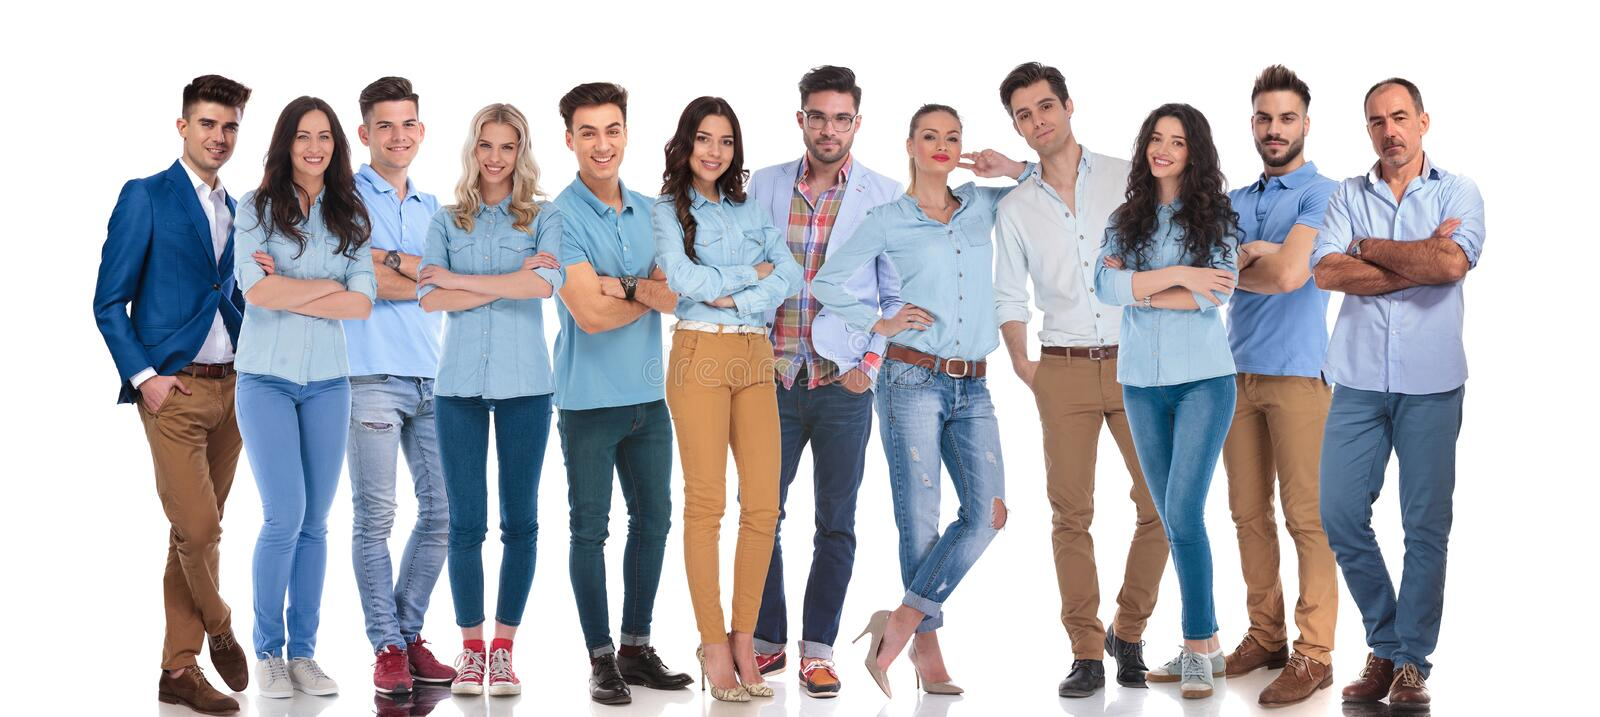 Large group of confident work colleagues posing together royalty free stock images